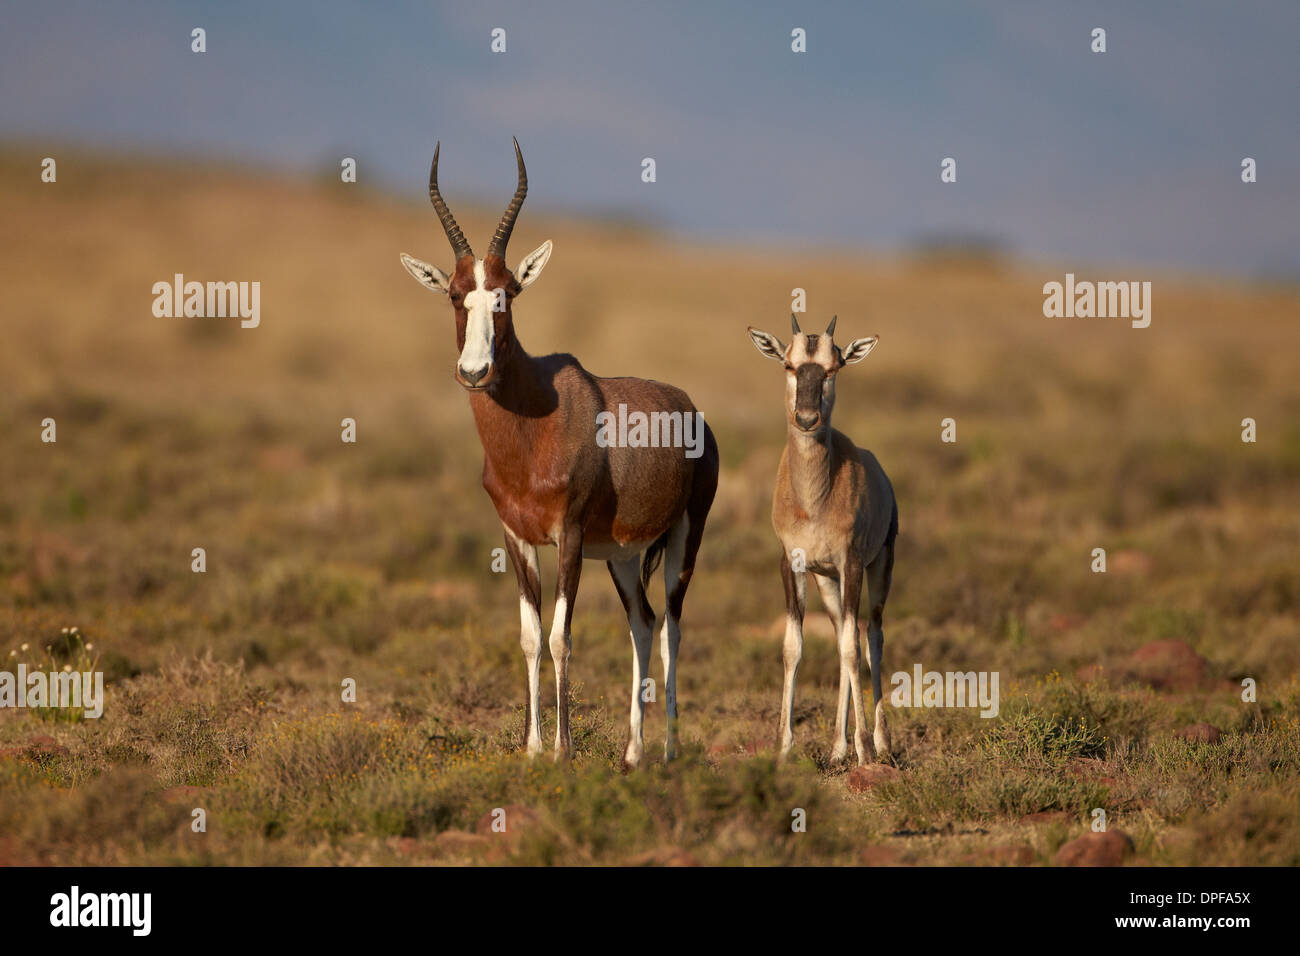 Blesbok (Damaliscus pygargus phillipsi) ewe and lamb, Mountain Zebra National Park, South Africa, Africa - Stock Image